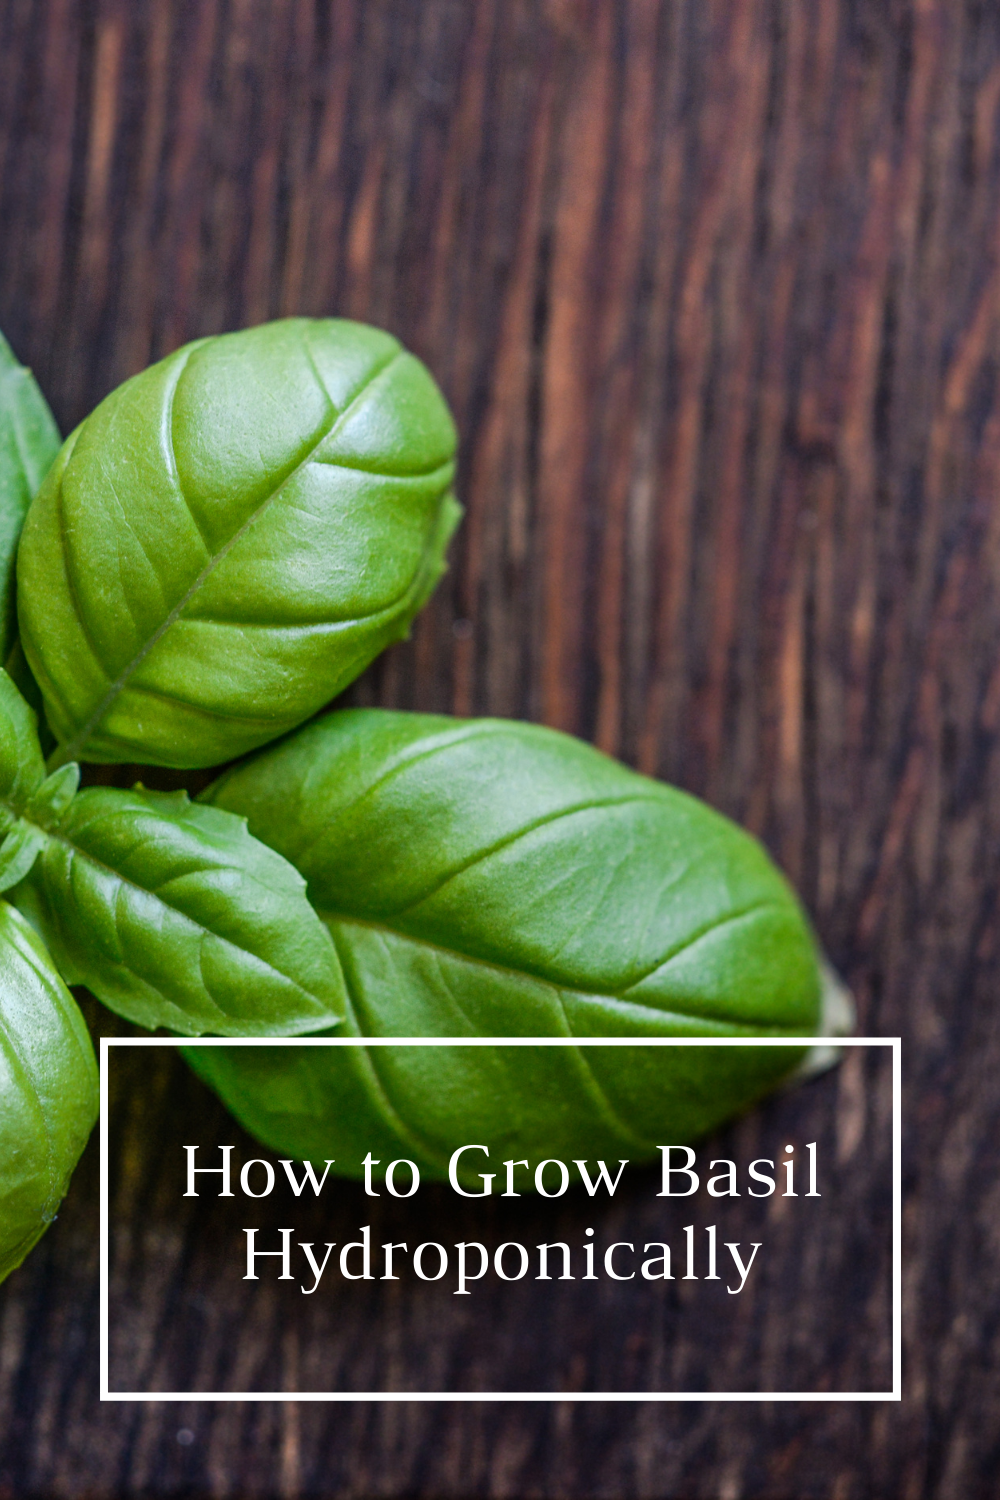 How to Grow Basil Hydroponically – A Beginner's Guide